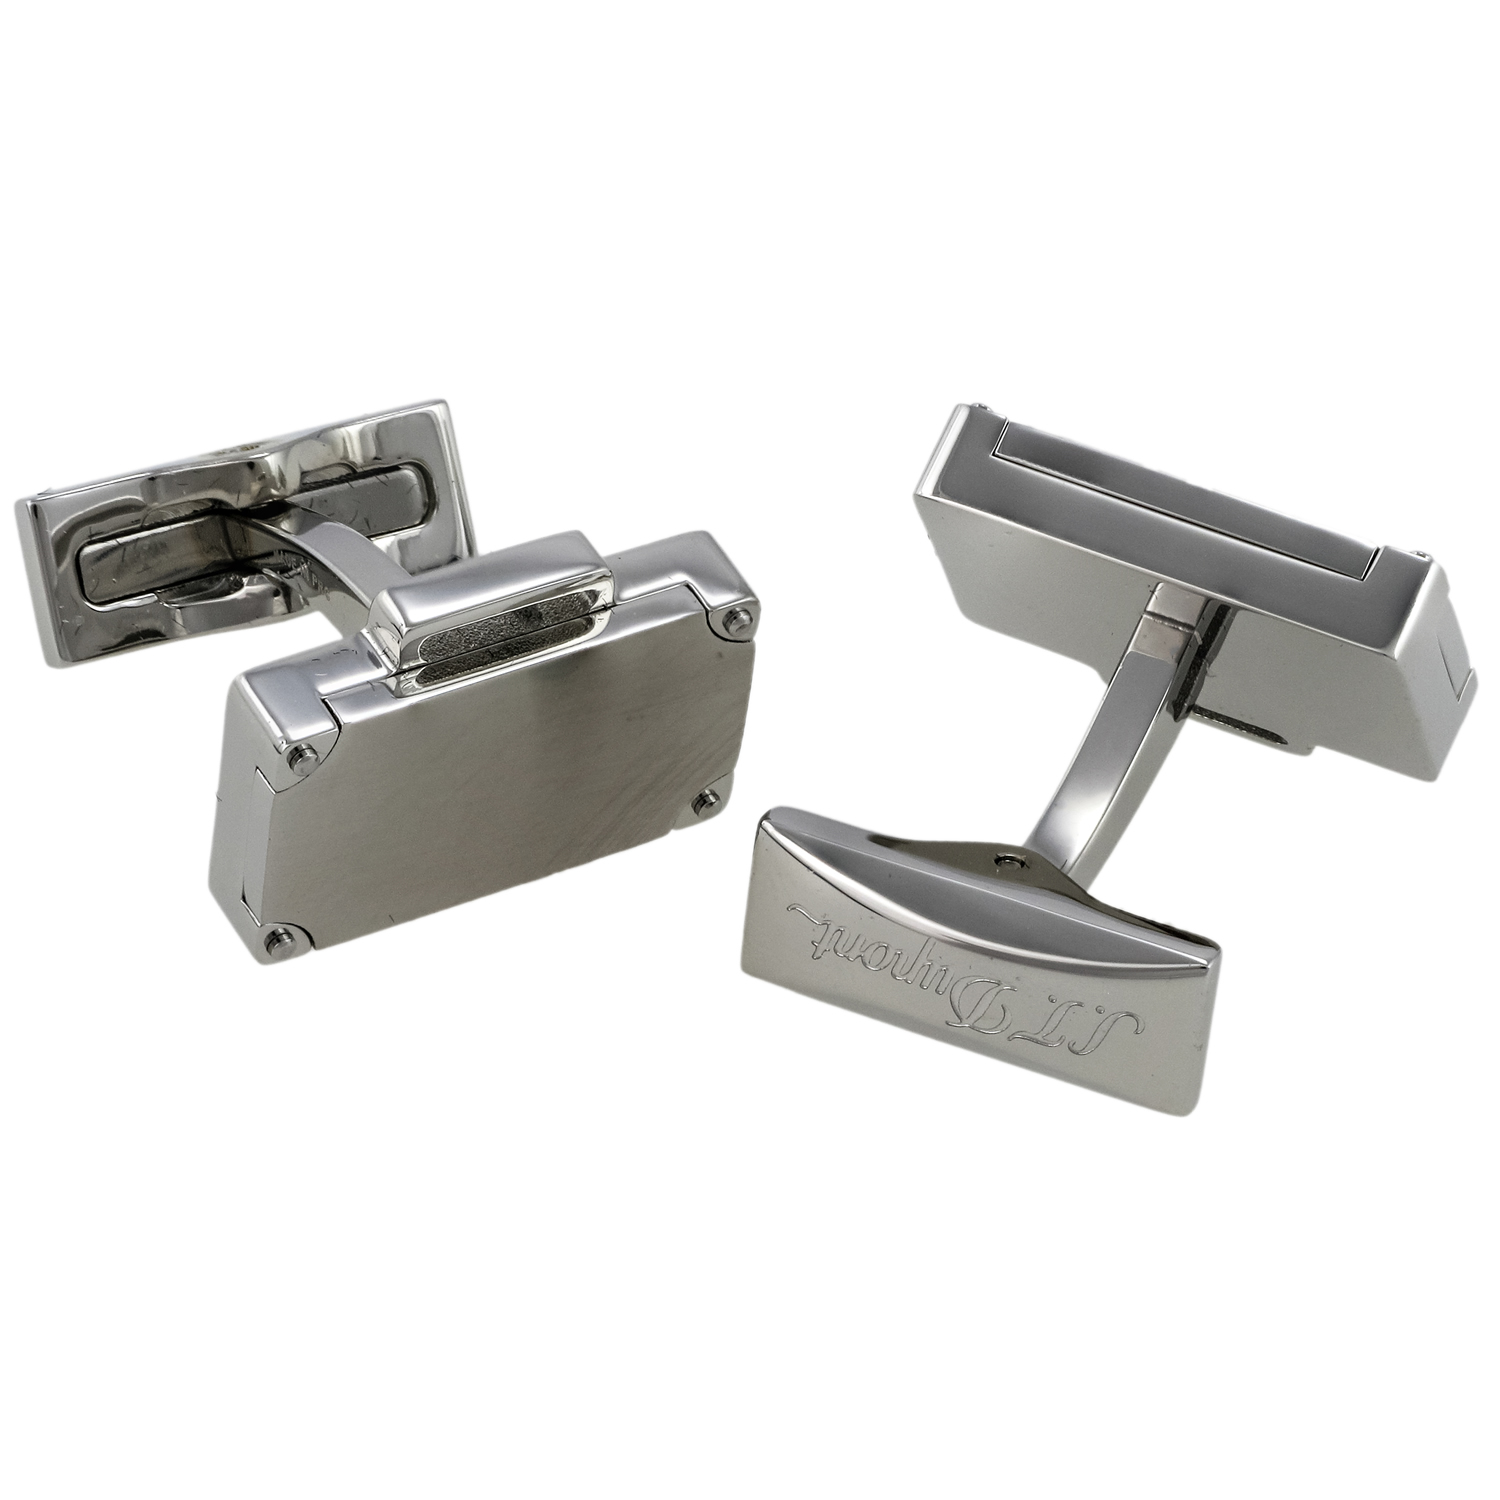 Valisette Brushed Finish Cufflinks 005762